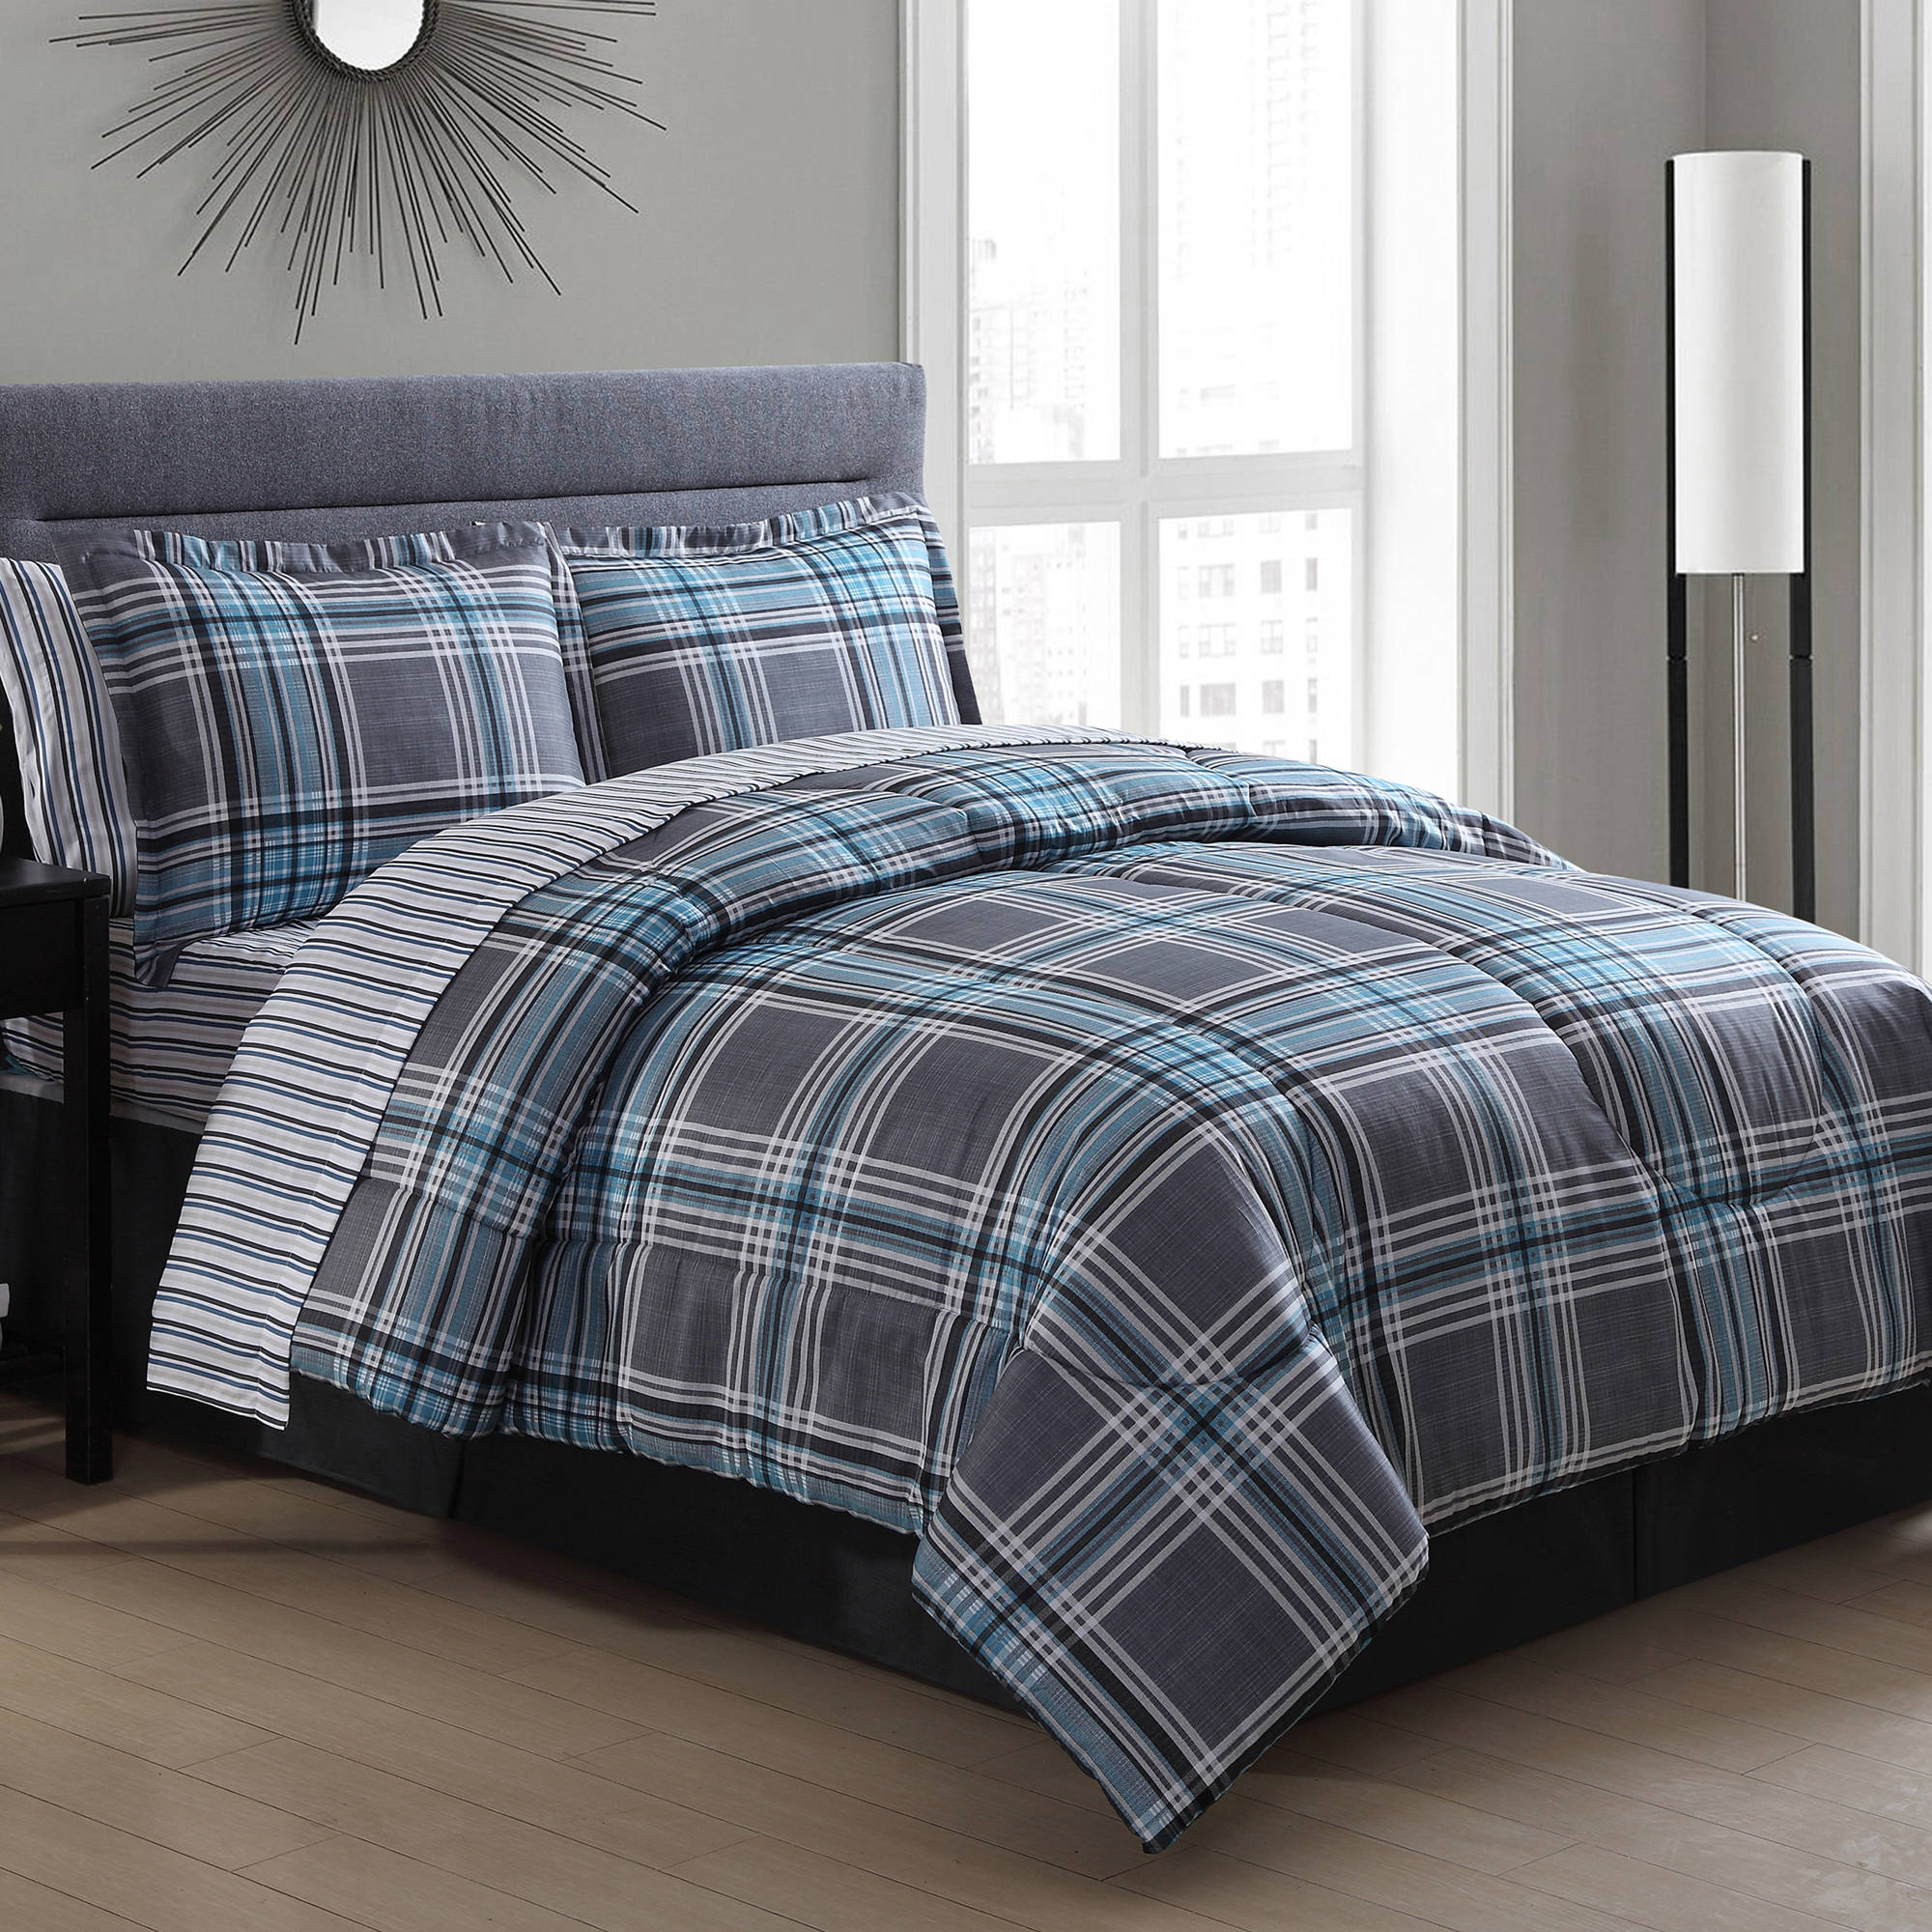 Chelsea Plaid Bed in a Bag